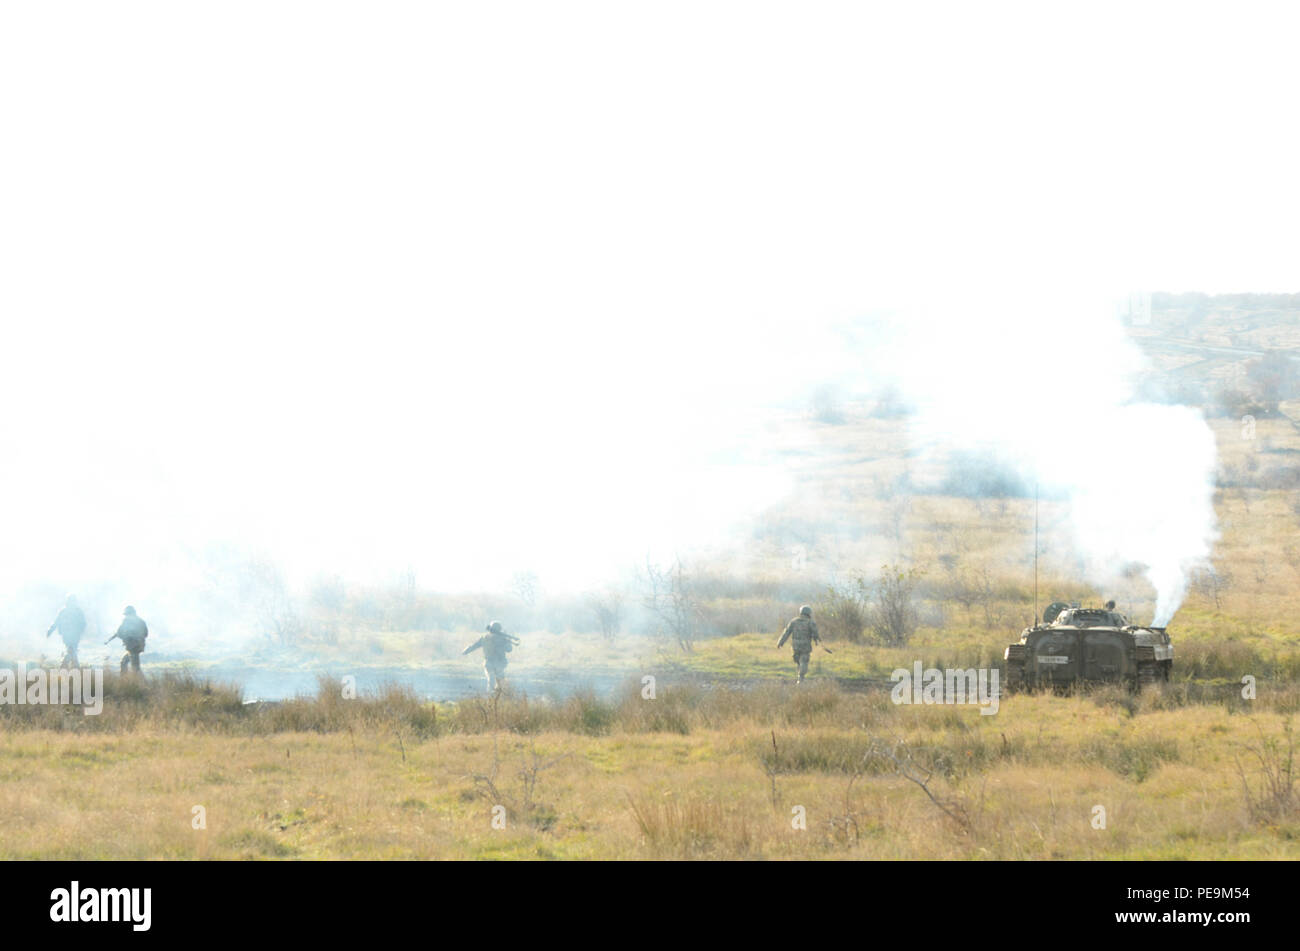 Bulgarian soldiers of 1-61st Mechanized Battalion begin their offensive approach on the enemy as the Boyevaya Mashina Pekhoty 1 (BMP -1) disperses a massive amount of white smoke in order to conceal the soldiers' movement during Exercise Peace Sentinel at Novo Selo Training Center, Bulgaria, Nov. 24, 2015. (U.S. Army photo by Staff Sgt. Steven M. Colvin/Released) - Stock Image